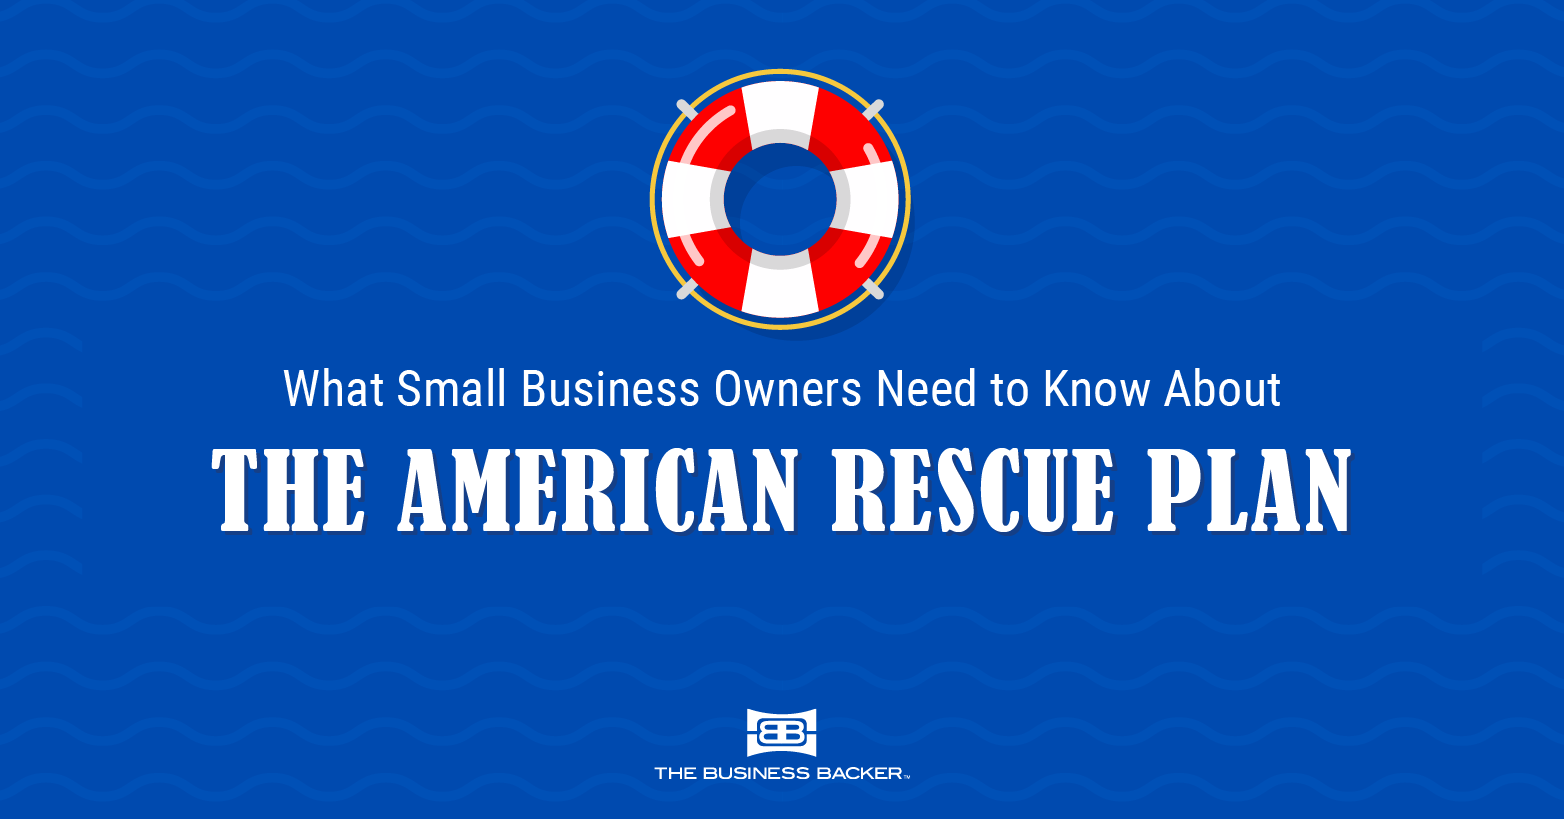 How Does the American Rescue Plan Help My Small Business?